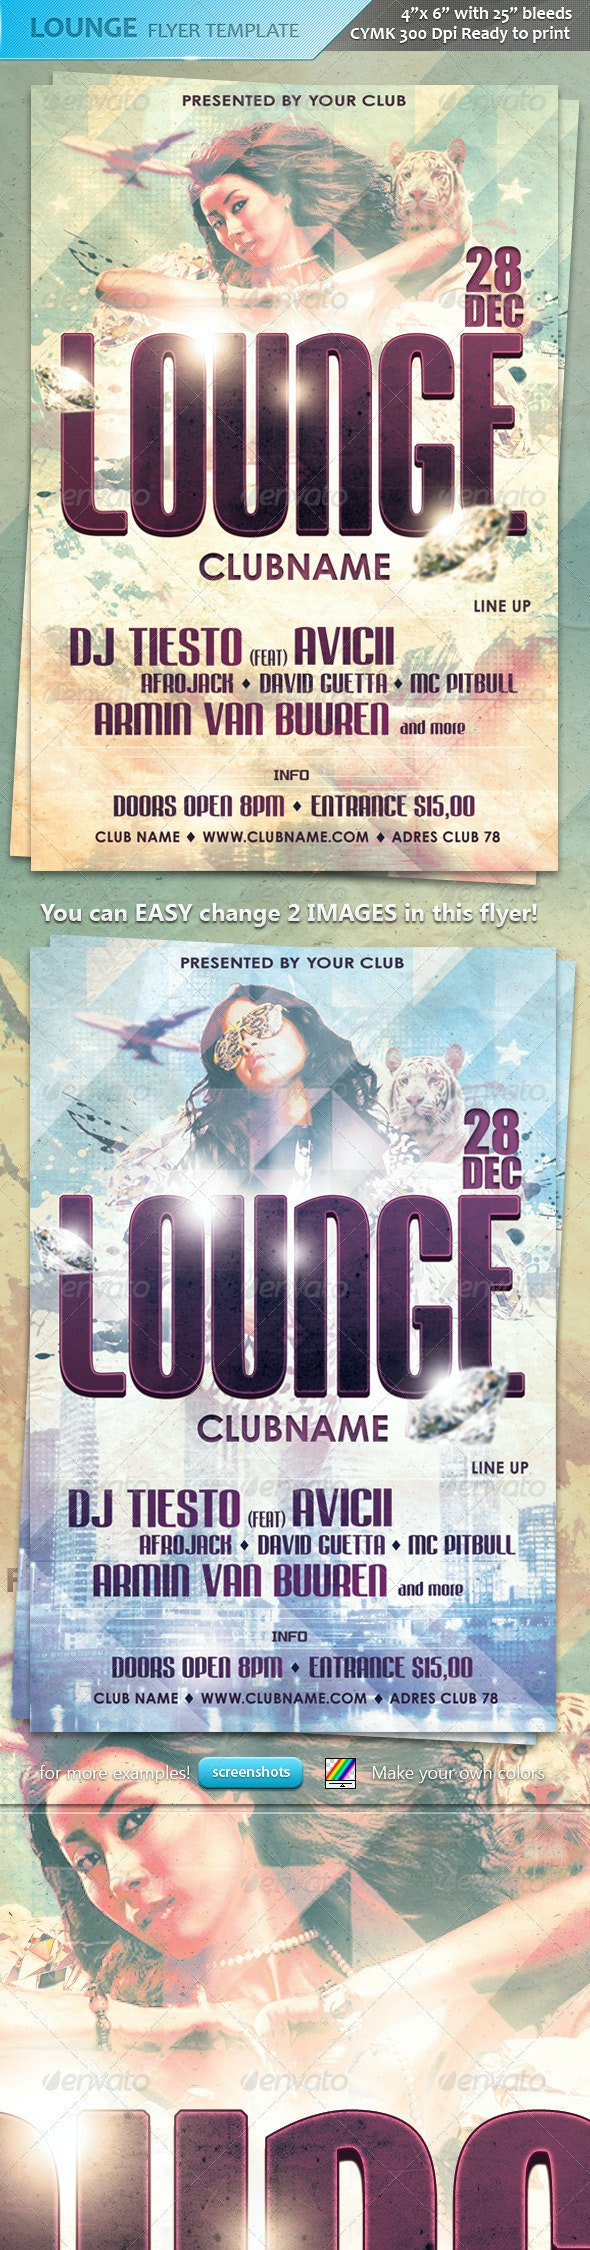 New Lounge Flyer Template - Clubs & Parties Events